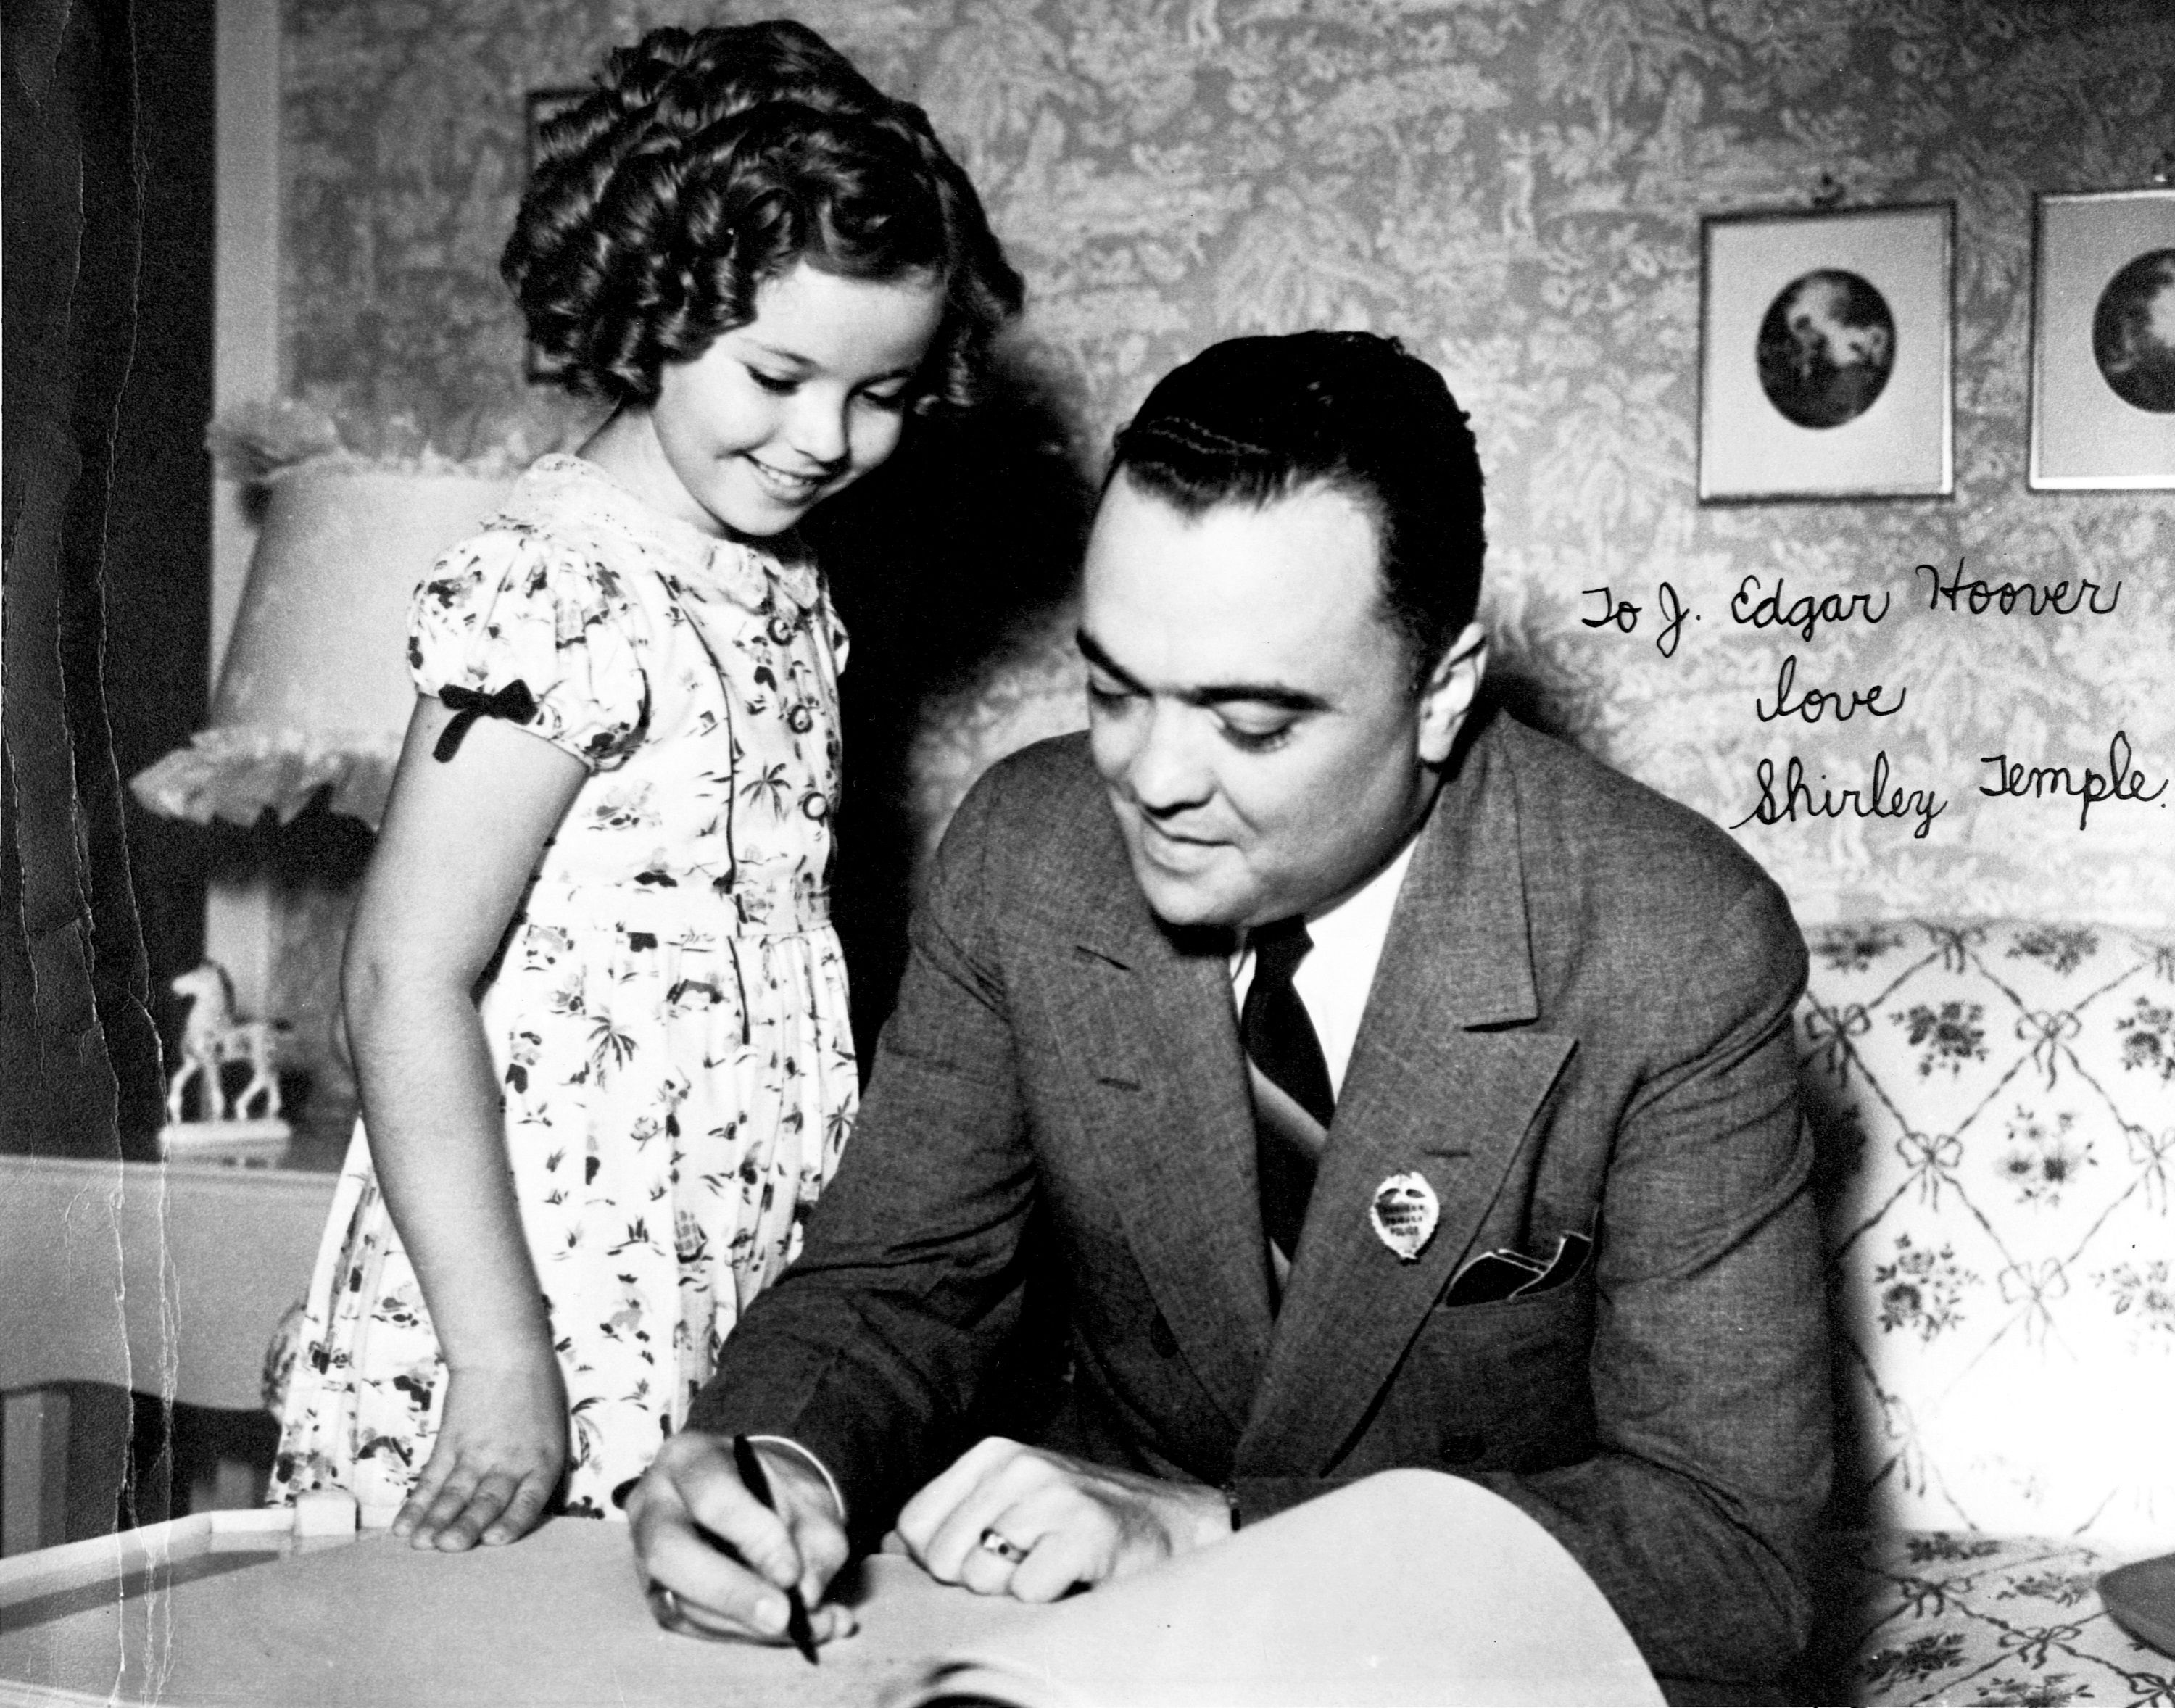 Photo of J. Edgar Hoover with Shirley Temple